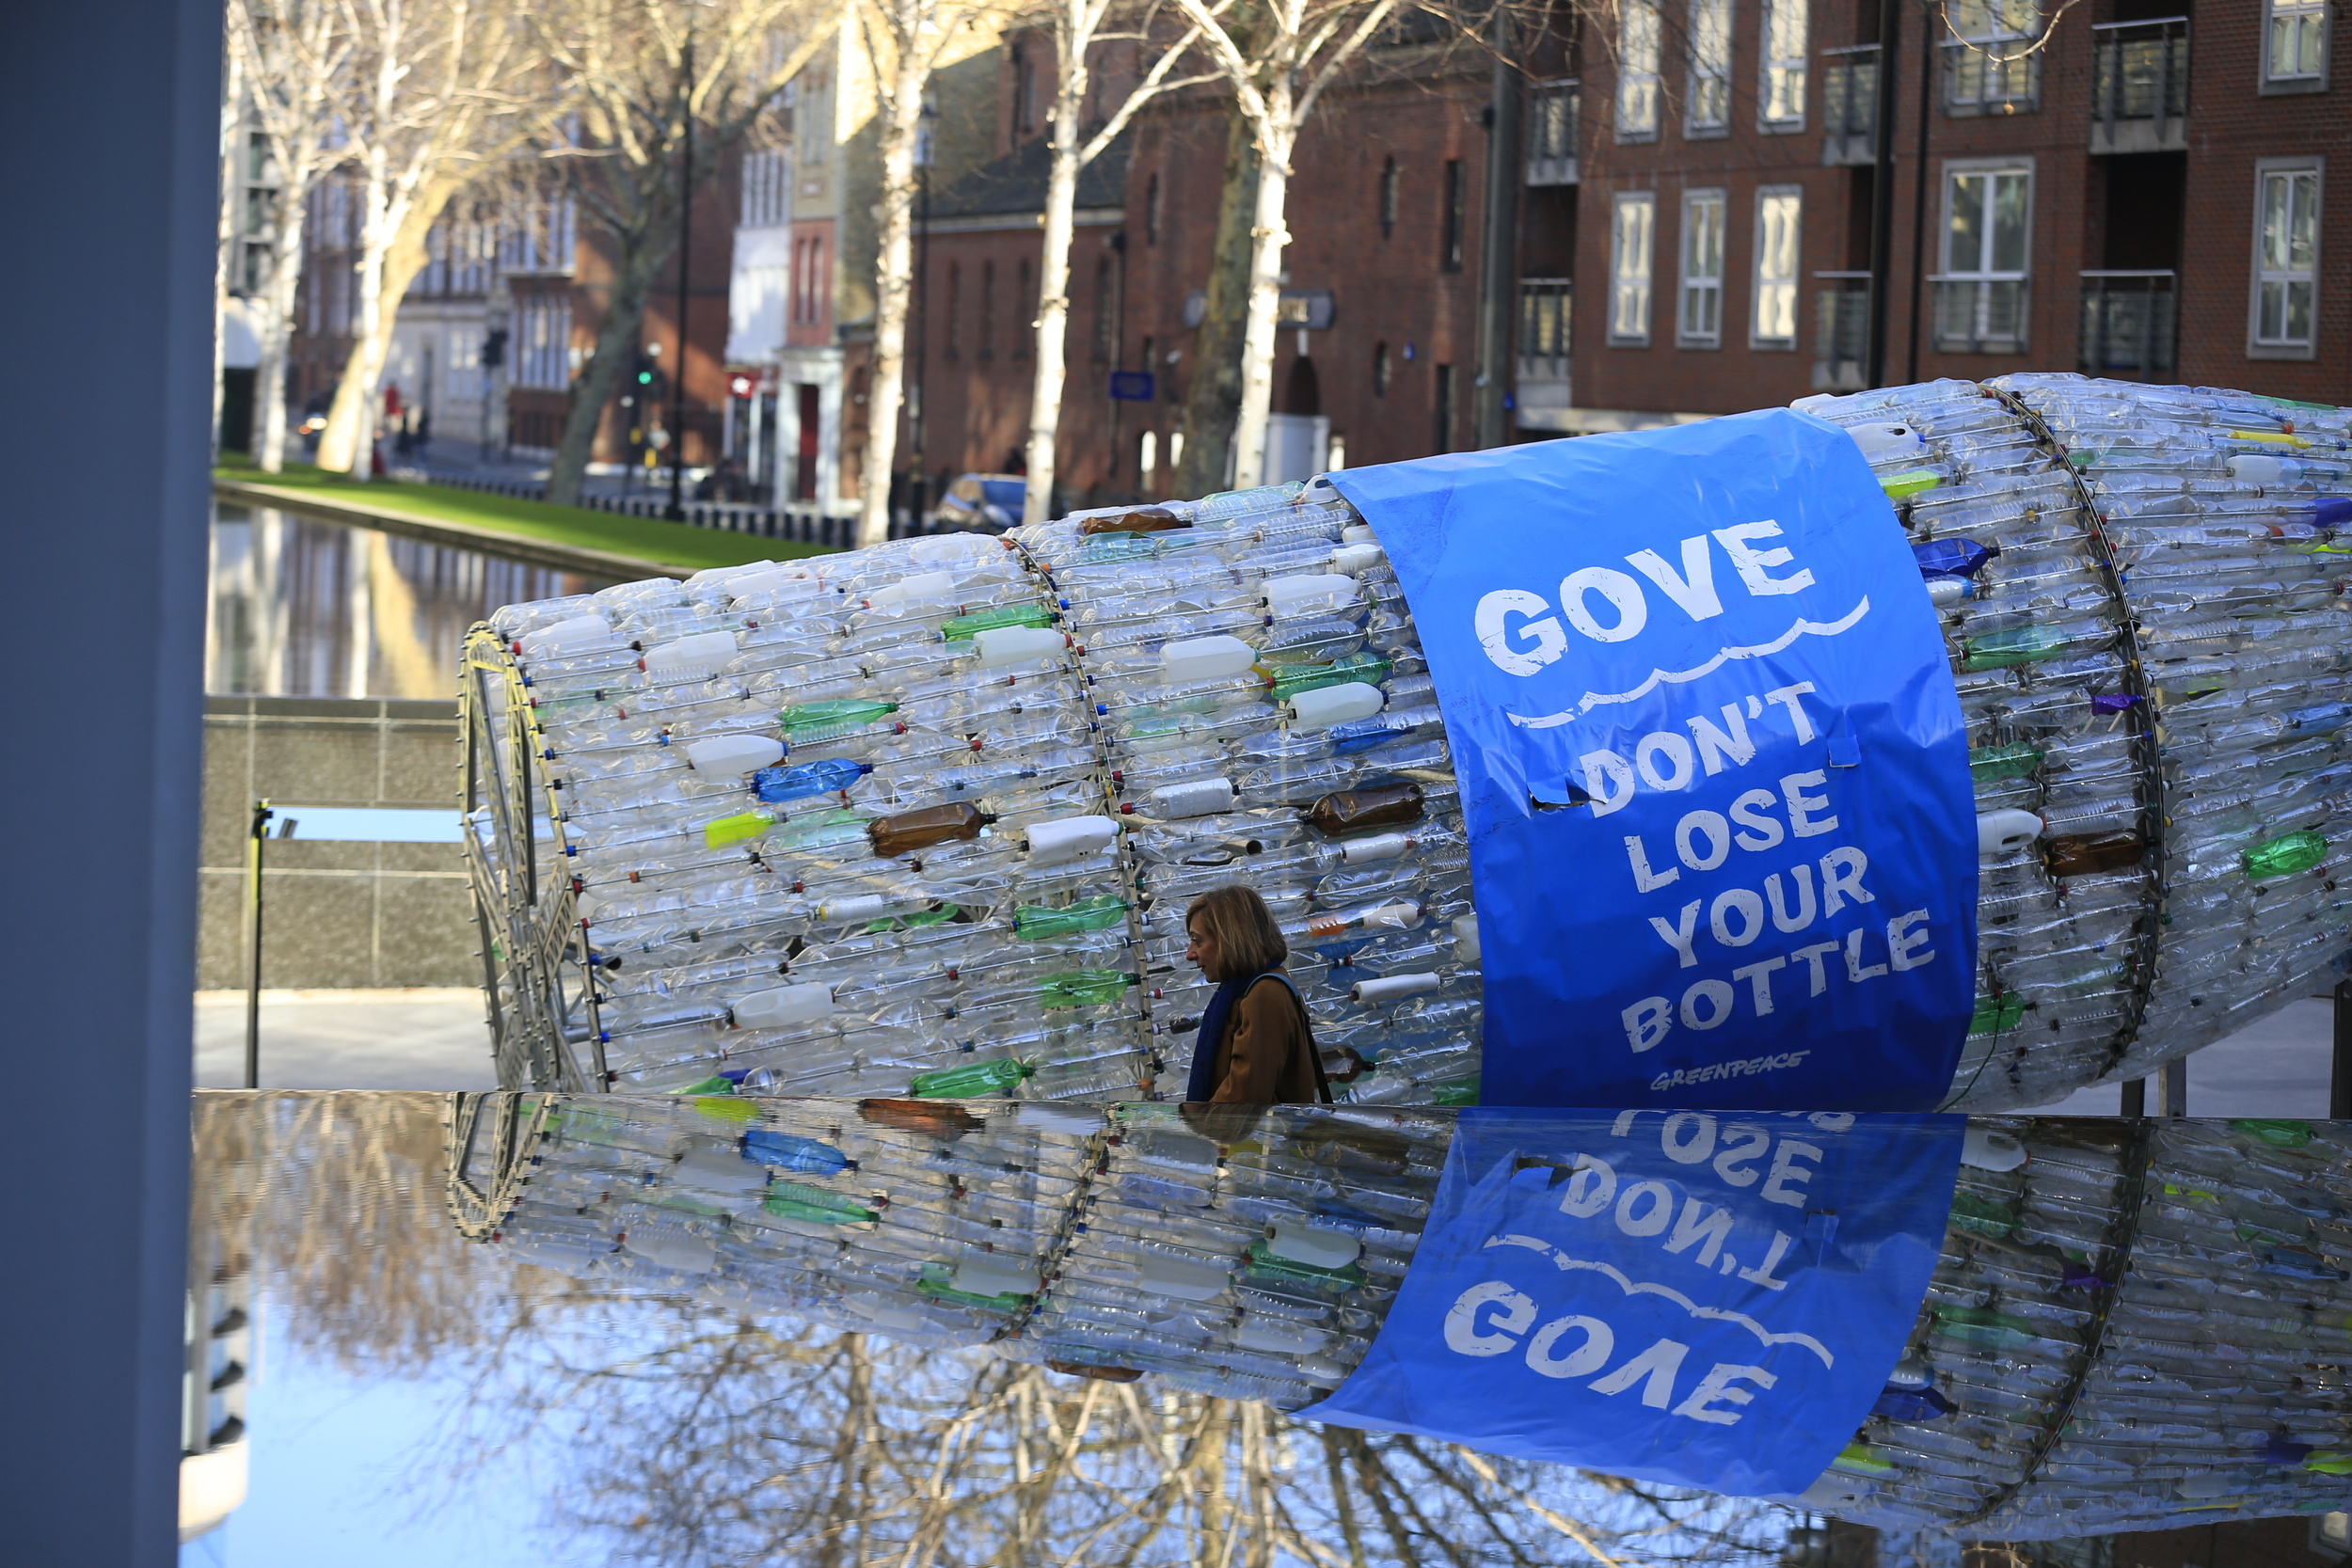 Giant sculpture of a plastic bottle made up of hundreds of real plastic bottles is carried through London by volunteers